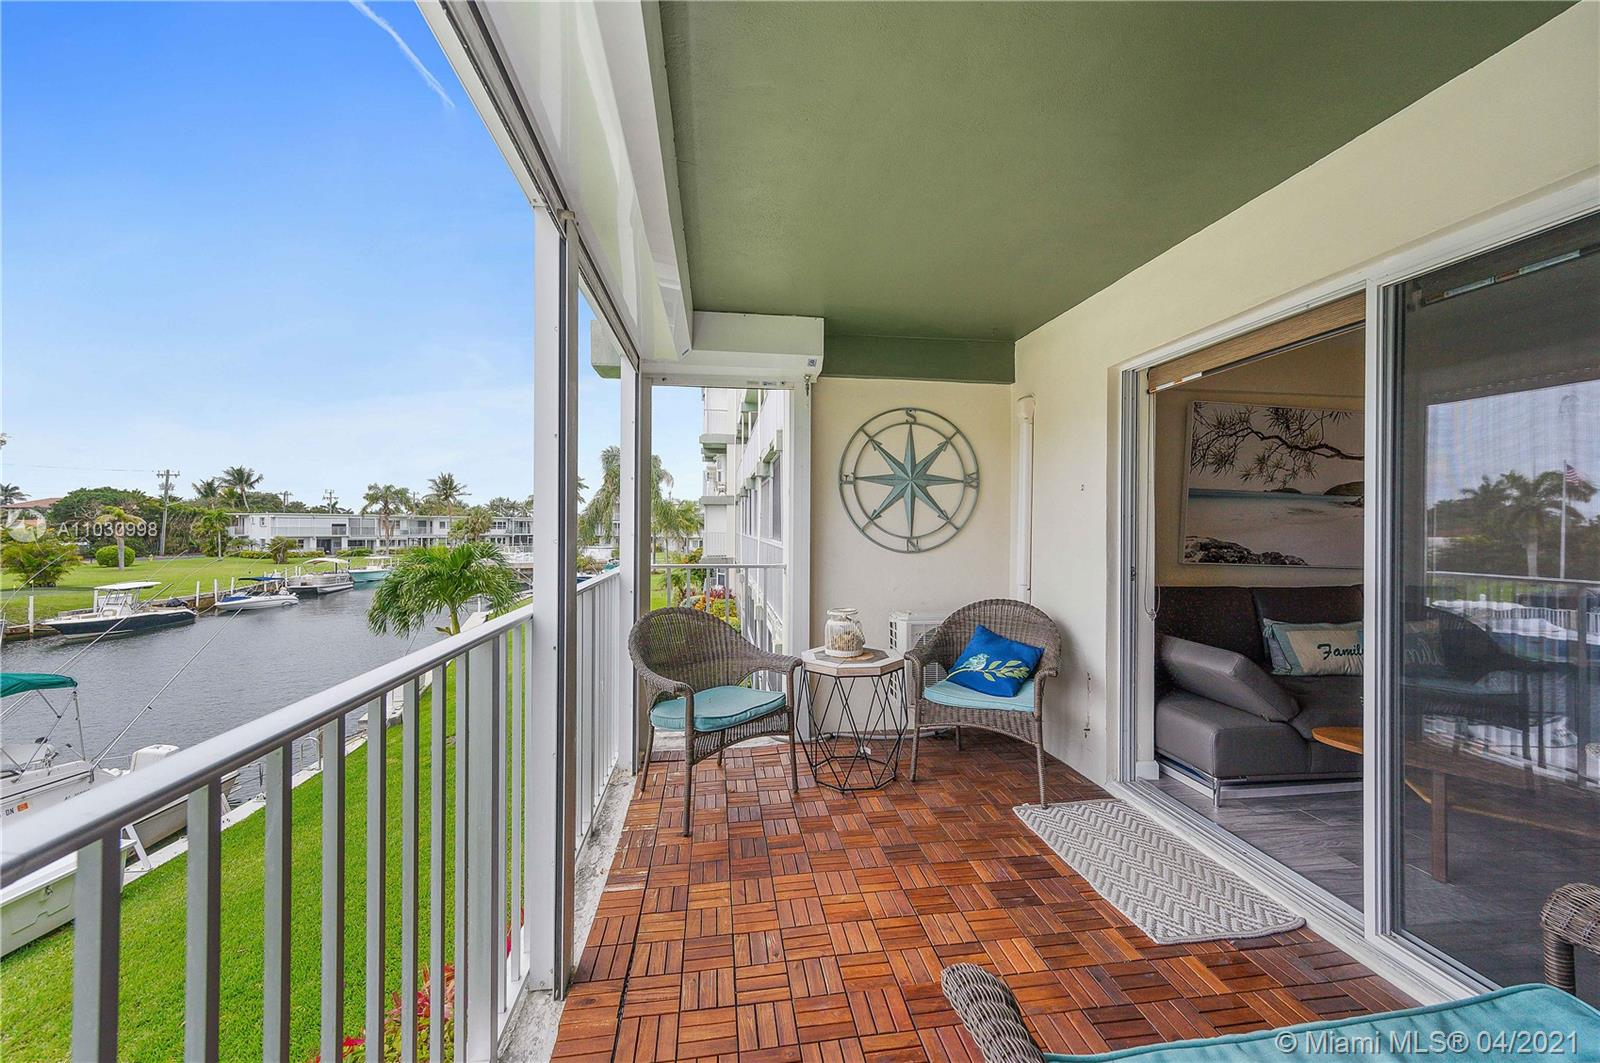 2 bedroom, 2 bath condo with covered balcony & view of the inlet and pool. Unit has been fully renovated in 2018, kitchen has a built-in kegerator. This is a vacation home used a couple times a year, very well maintained. The building is tucked back amongst a neighborhood of single family homes for added privacy & exclusivity, & features 2 private pools, putting green, shuffleboard, elevator & common laundry. Full hurricane protection with electric shutters. Centrally located within minutes to Deerfield Beach, shops & restaurants & all of your in-town needs, including Target!